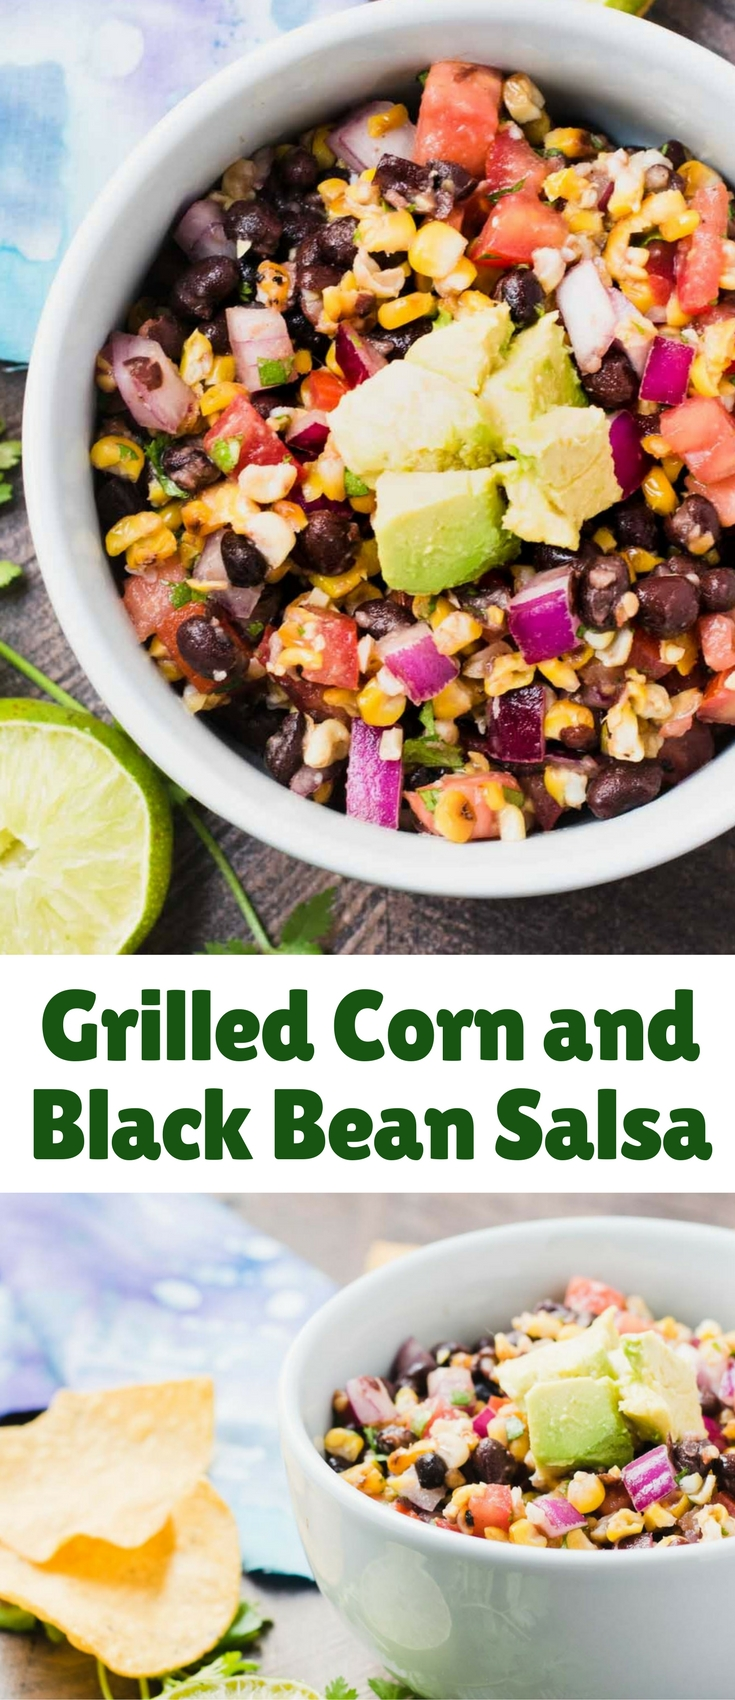 This Grilled Corn and Black Bean Salsa brings together some amazing flavors that make it the perfect dip for a summer backyard party!